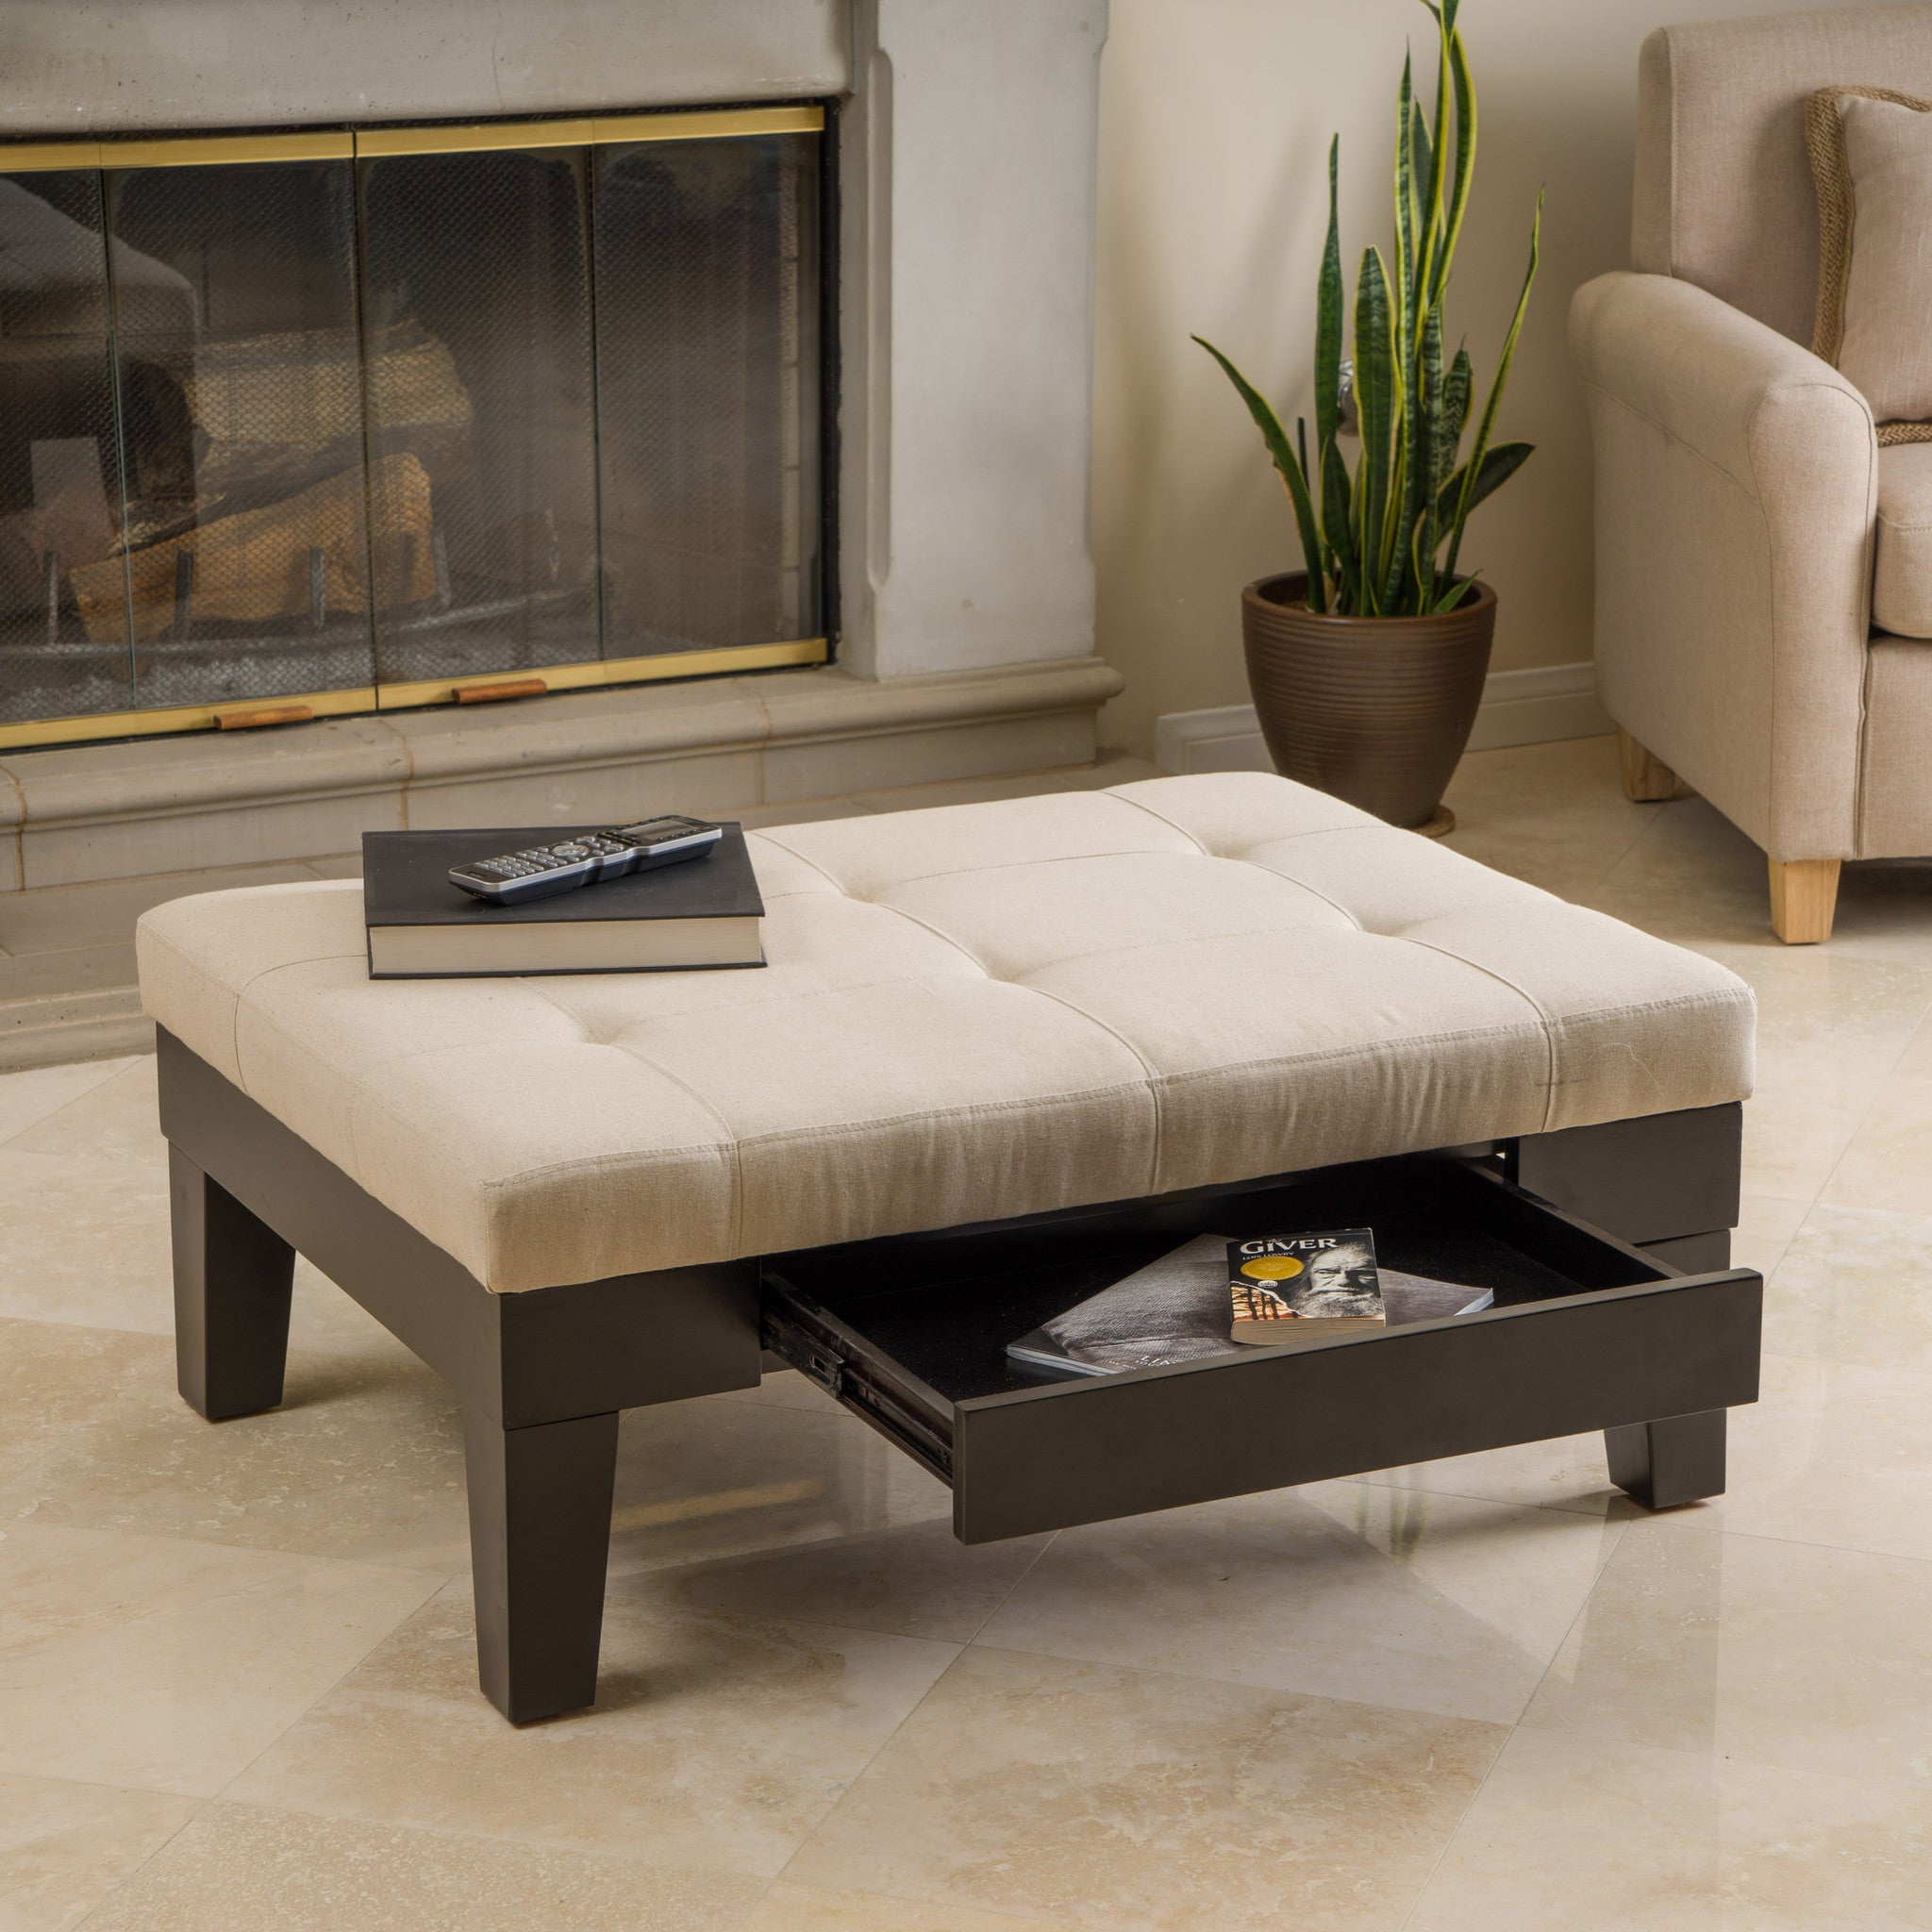 Tucson natural fabric storage ottoman coffee table great Living room furniture tucson